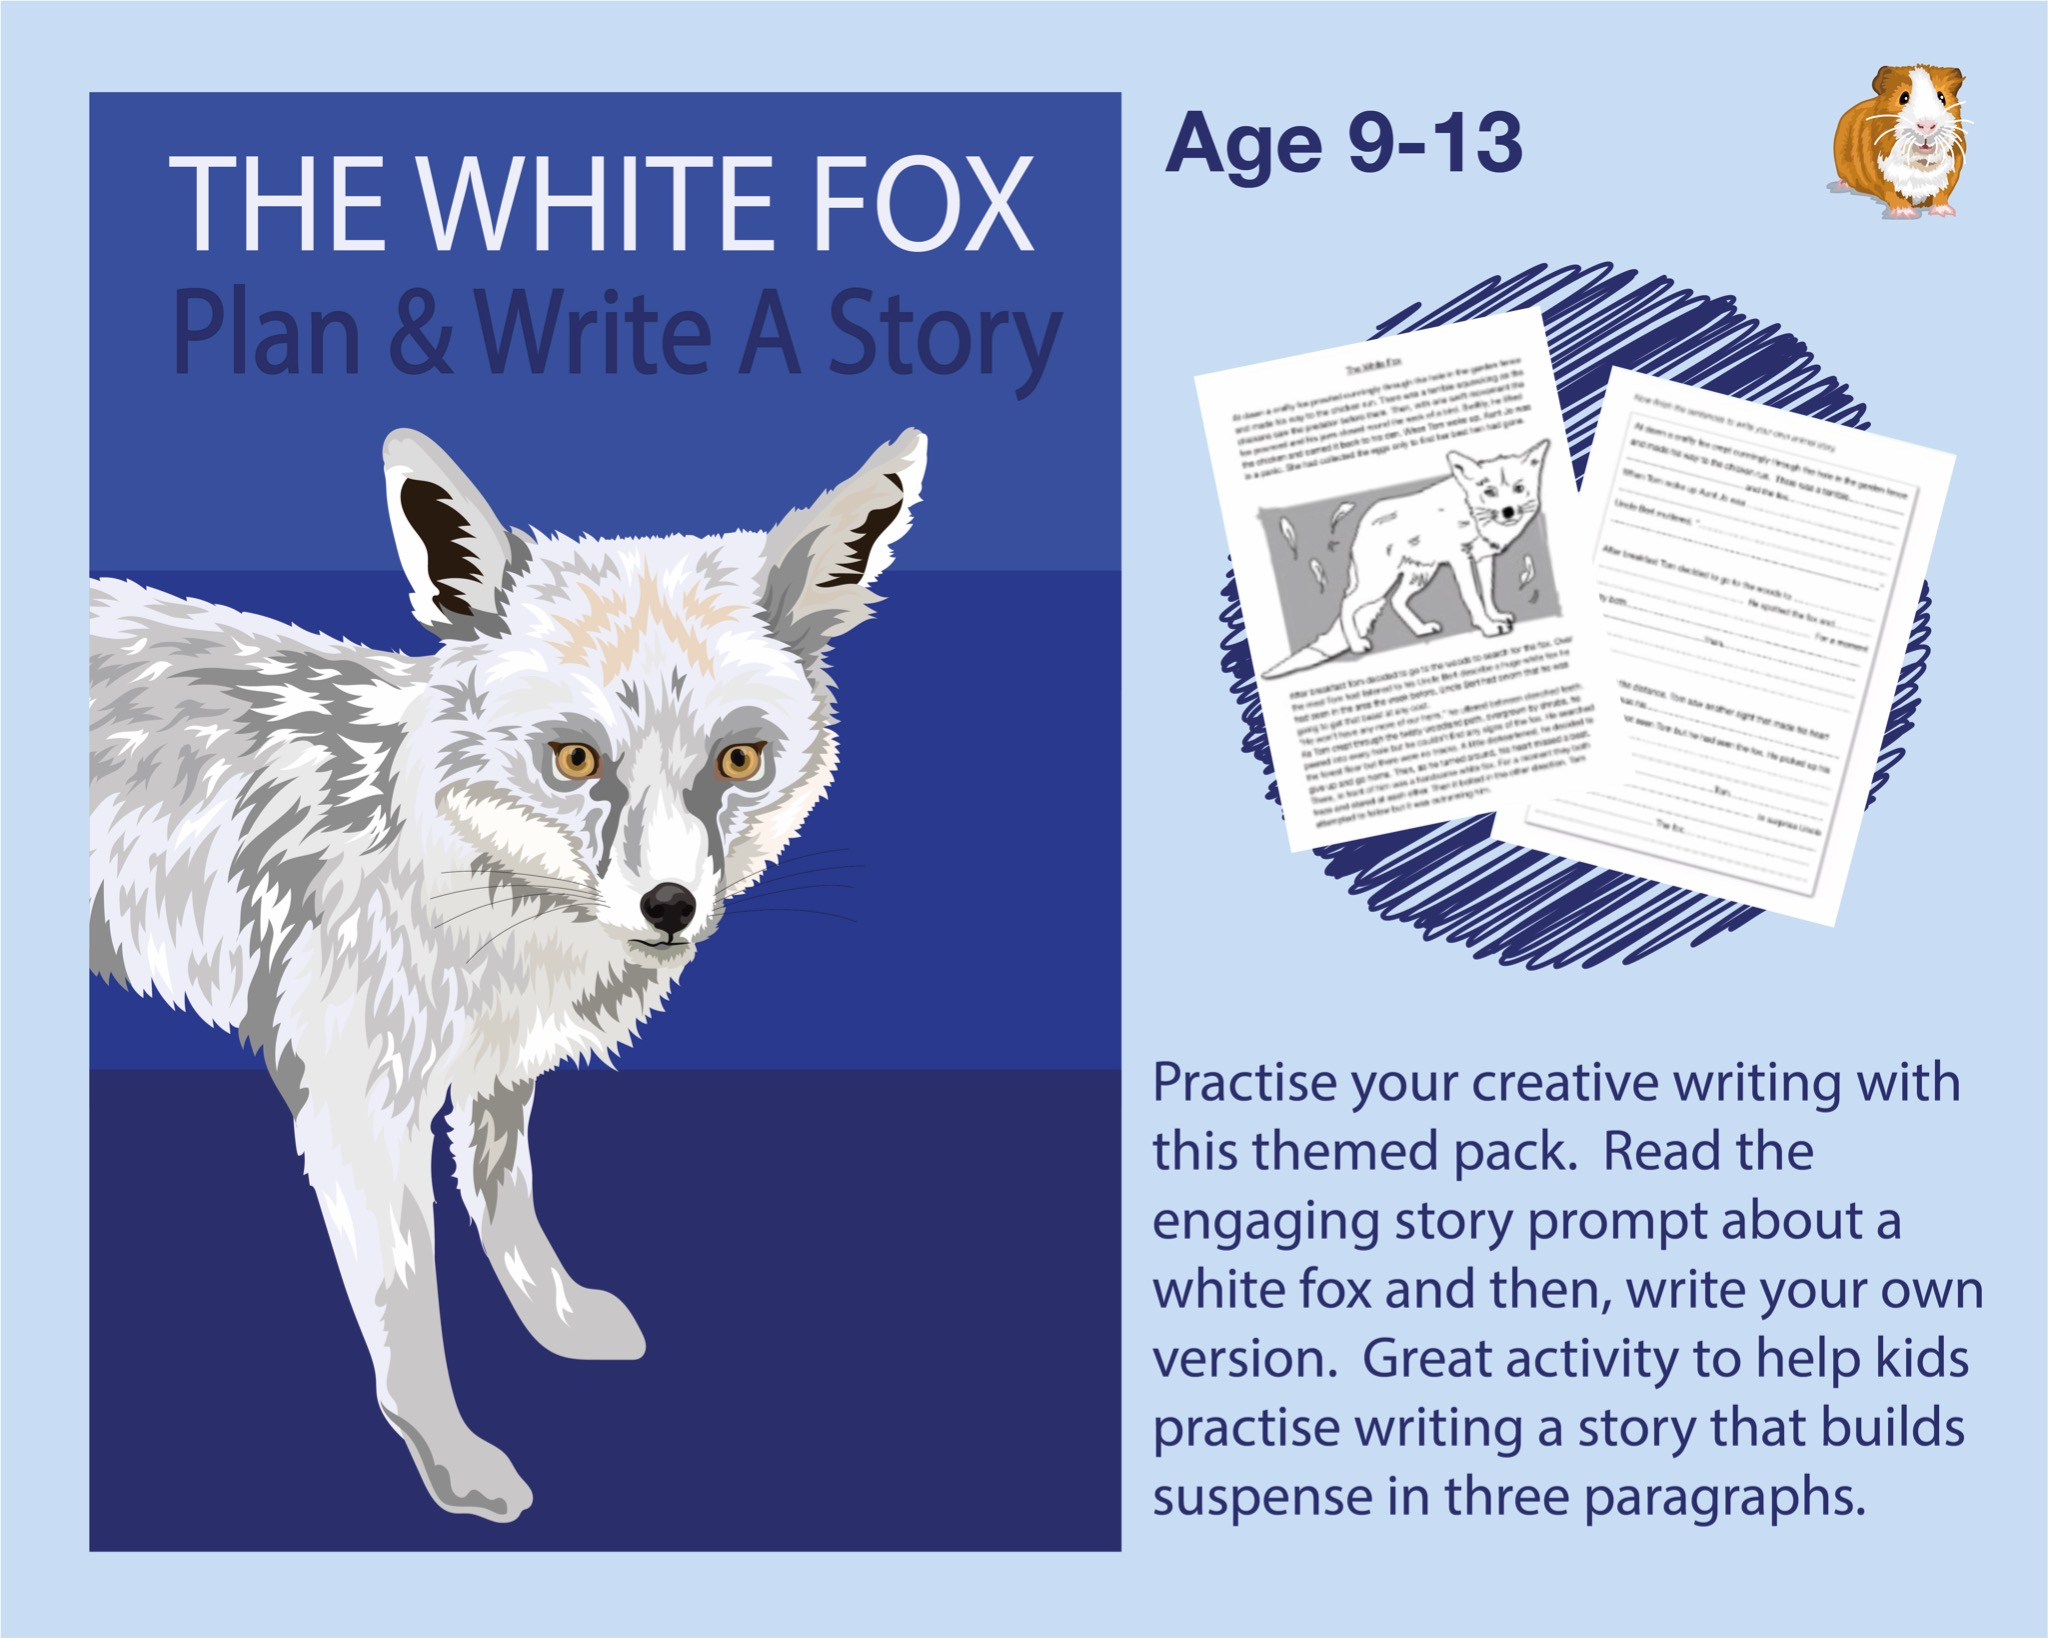 Plan And Write A Story Called 'The White Fox' (9-12 years)